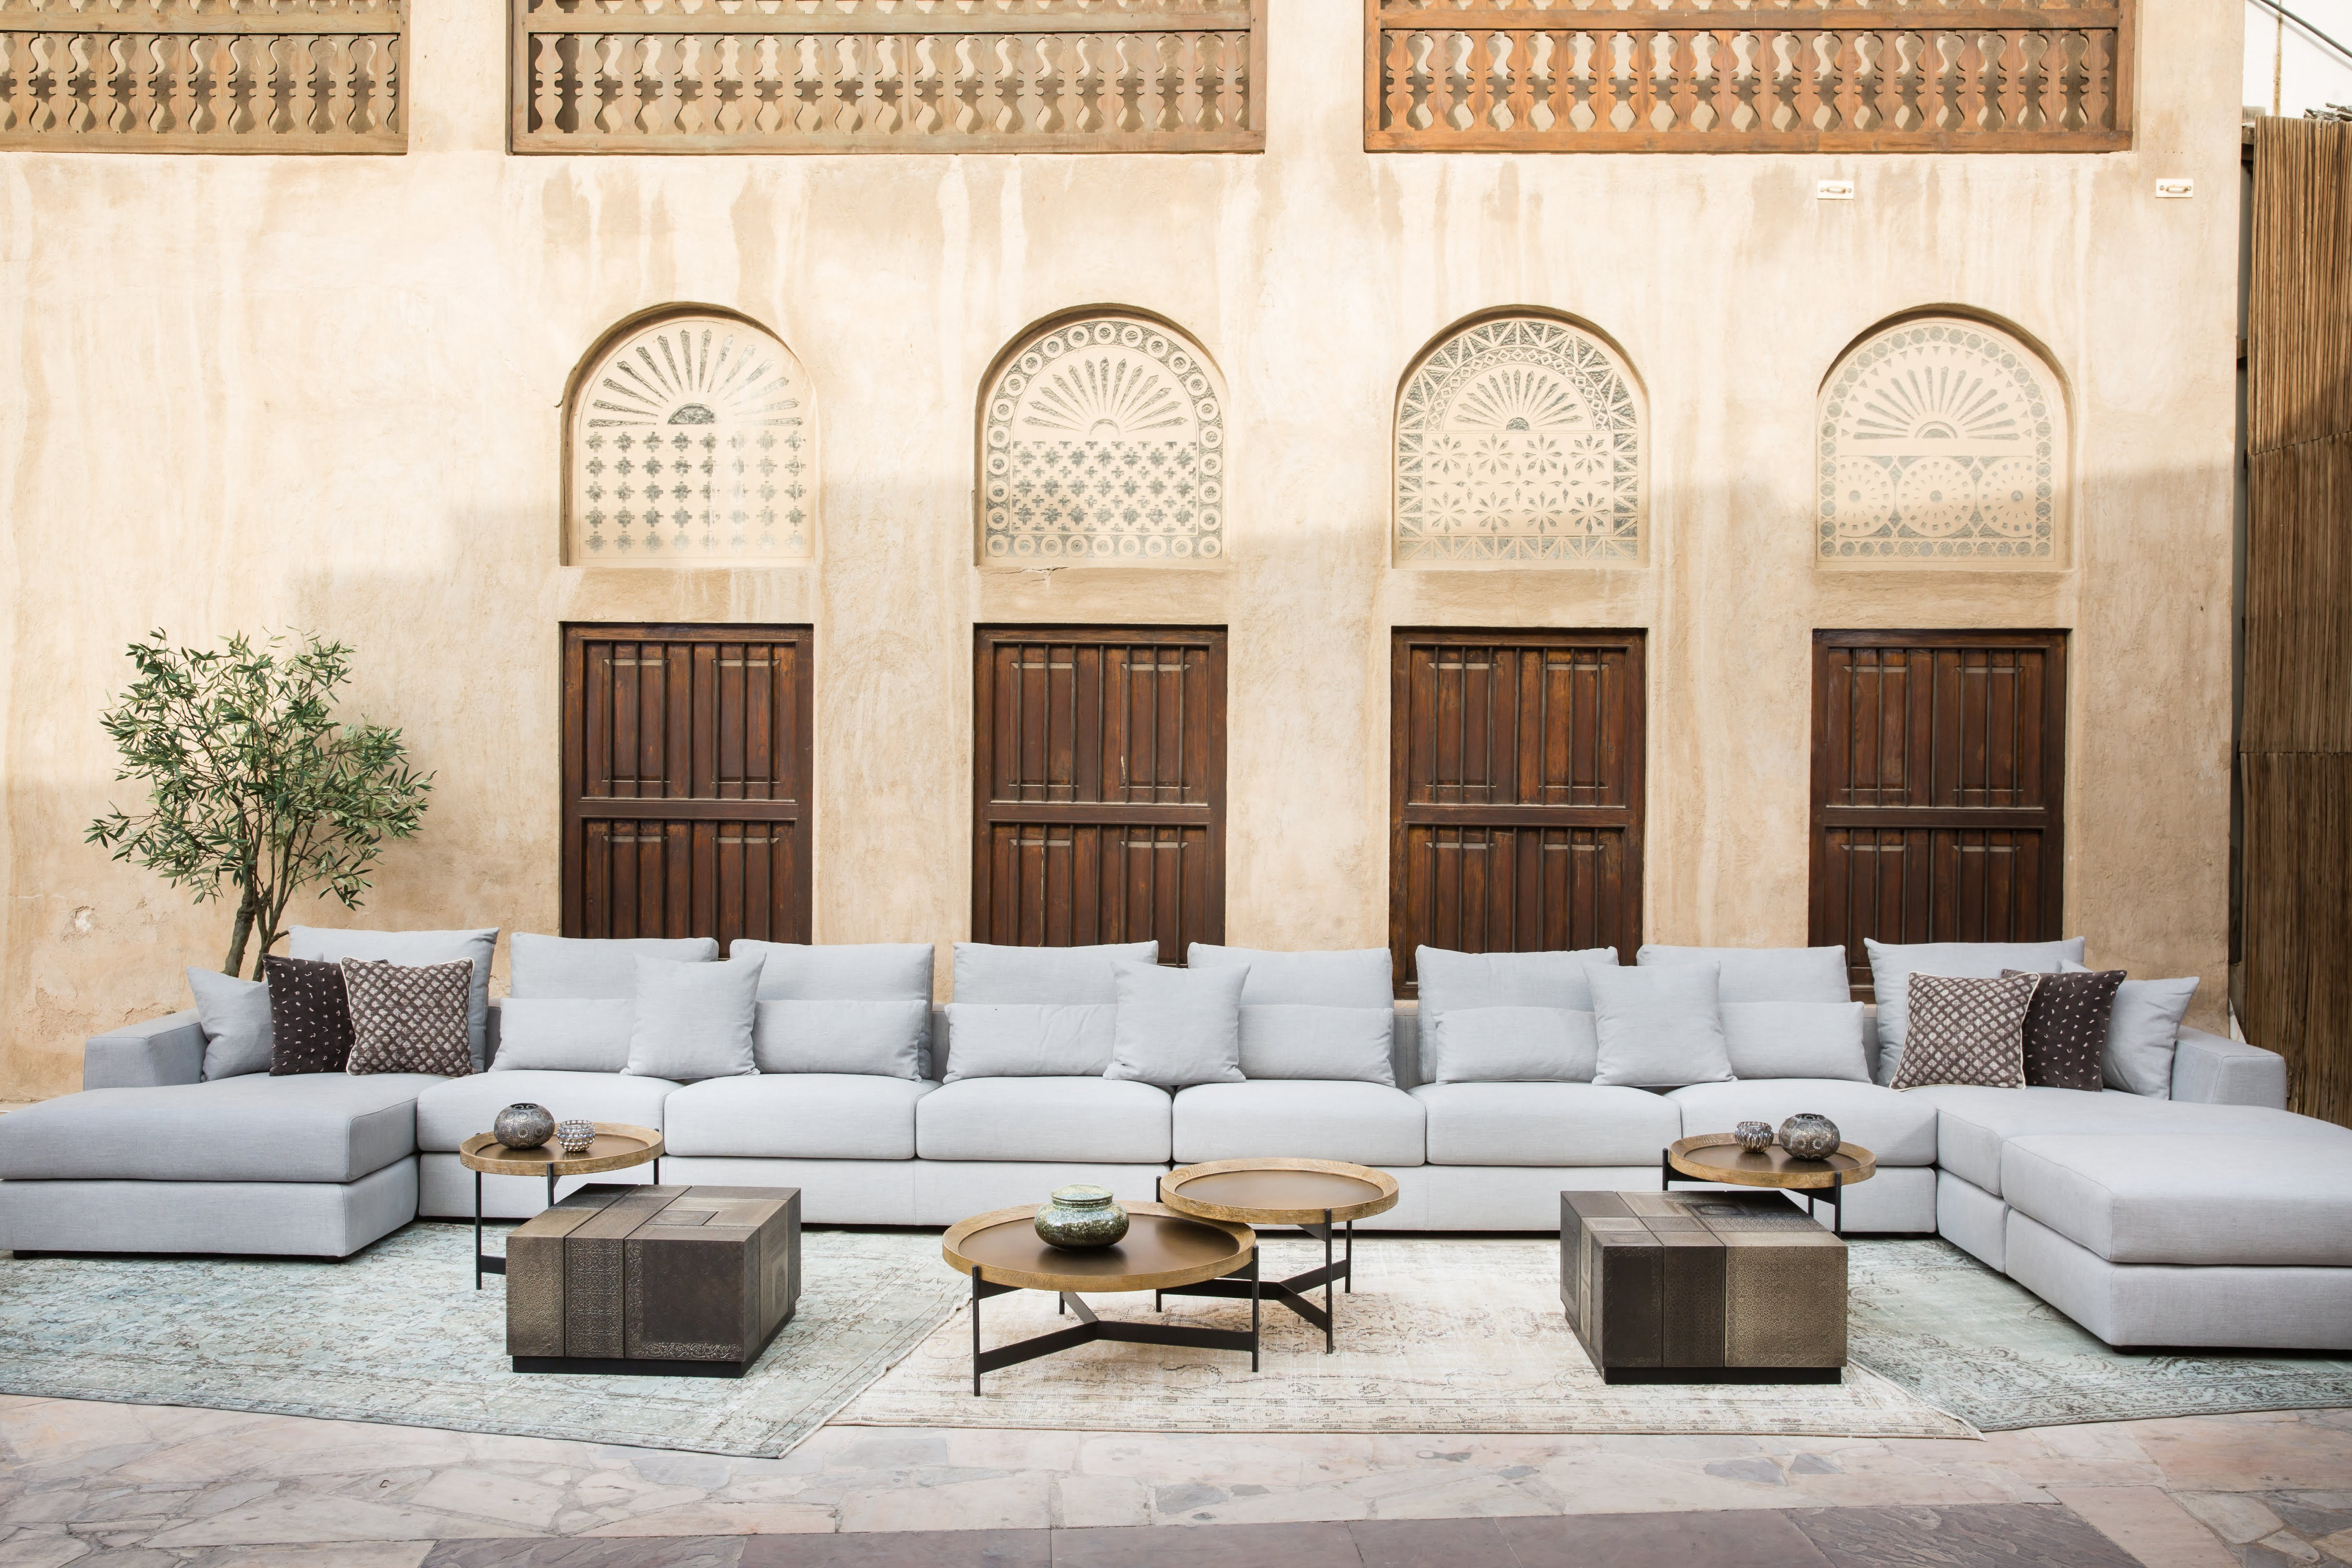 With Approach Of The Holy Month Of Ramadan, Home Grown Furniture Brand  Marina Home Interiors Sets The Stage By Introducing Arabian Majlis Settings  That ...